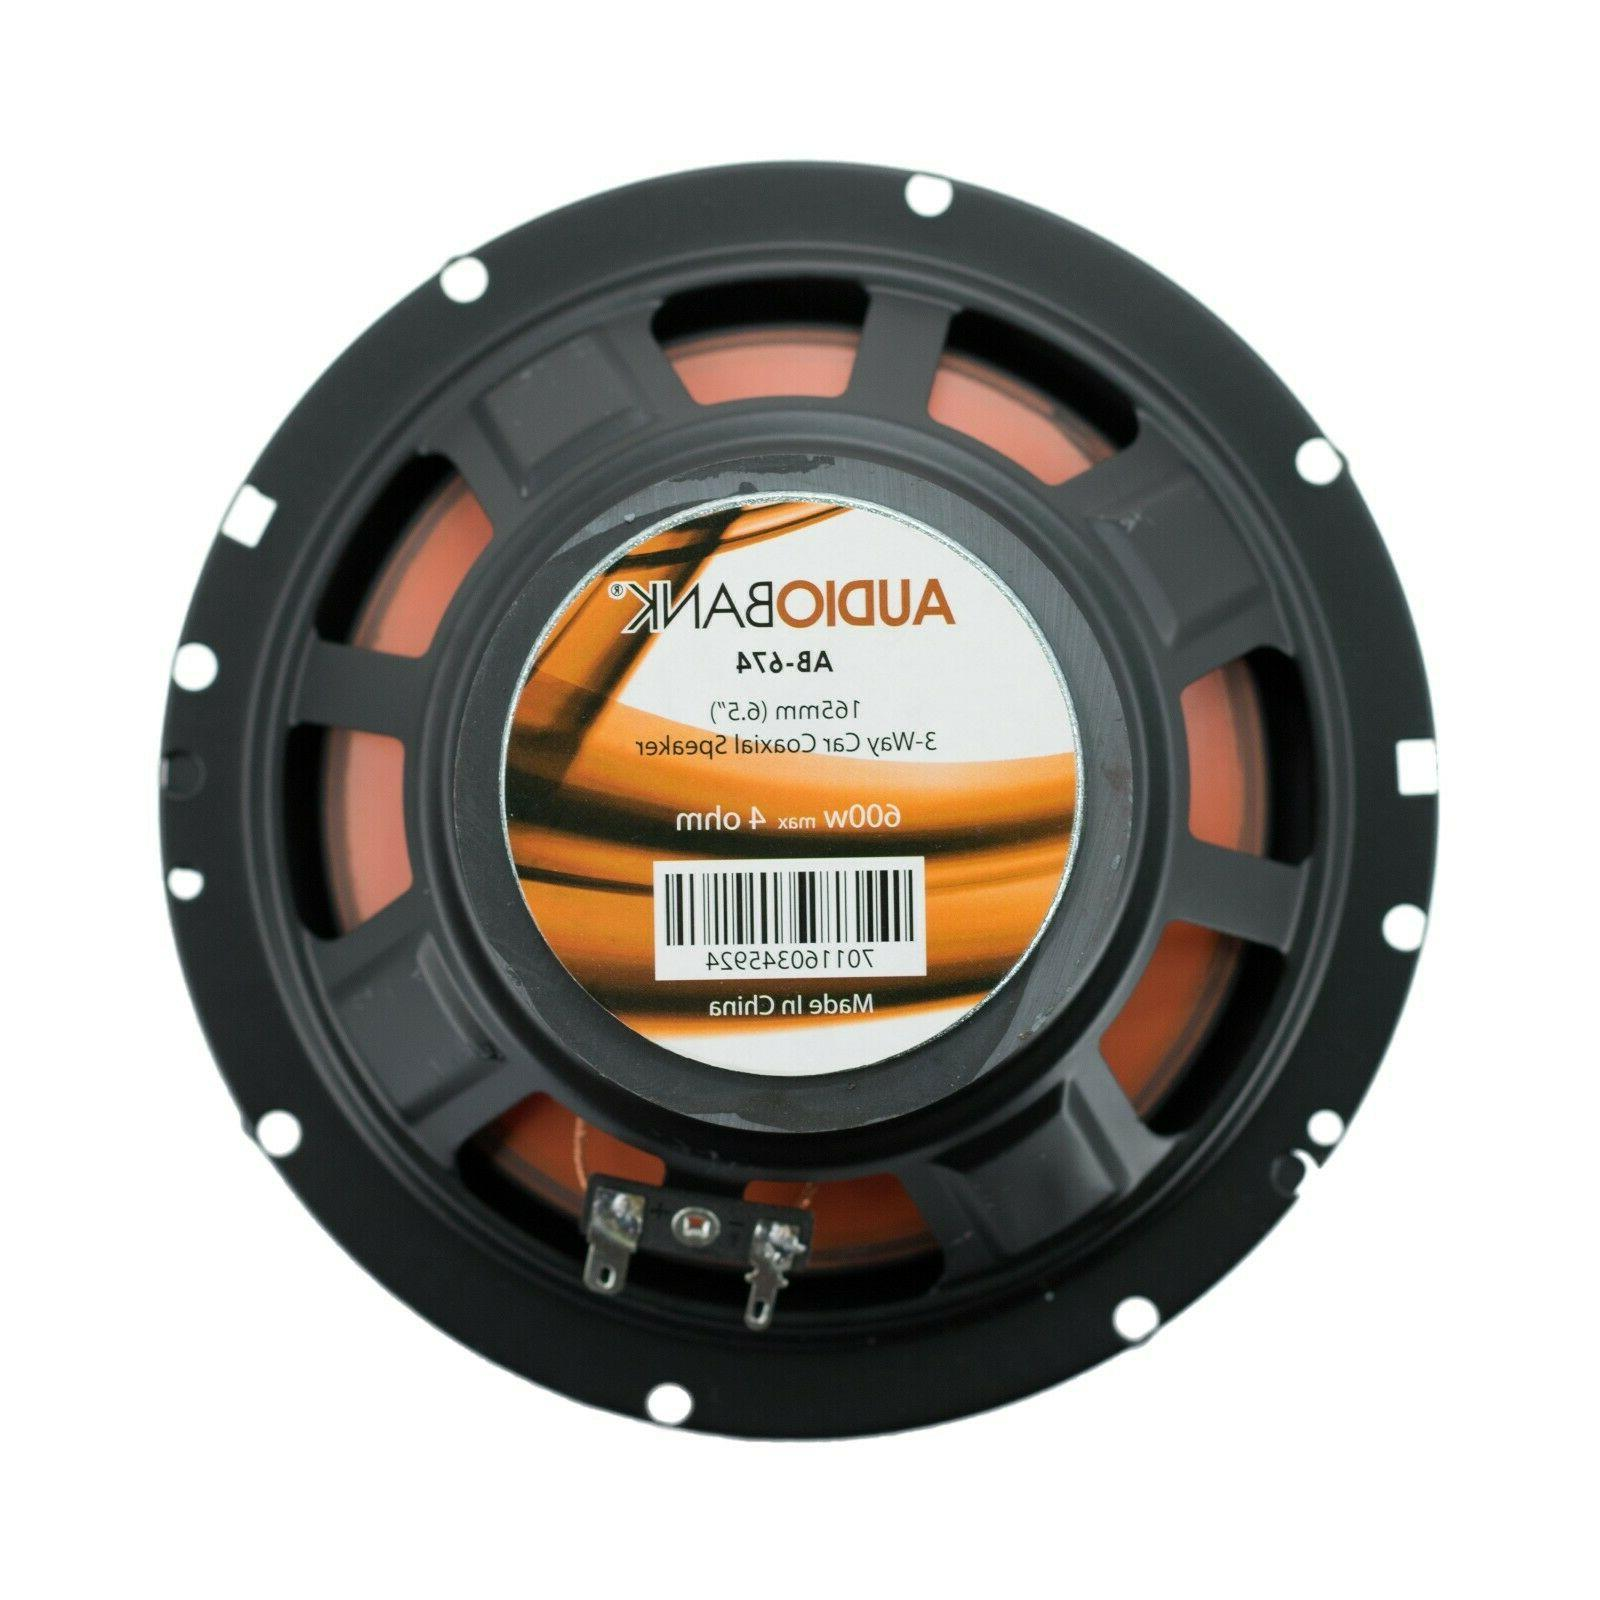 2) Watt 3-Way Orange Car Audio Stereo - AB674